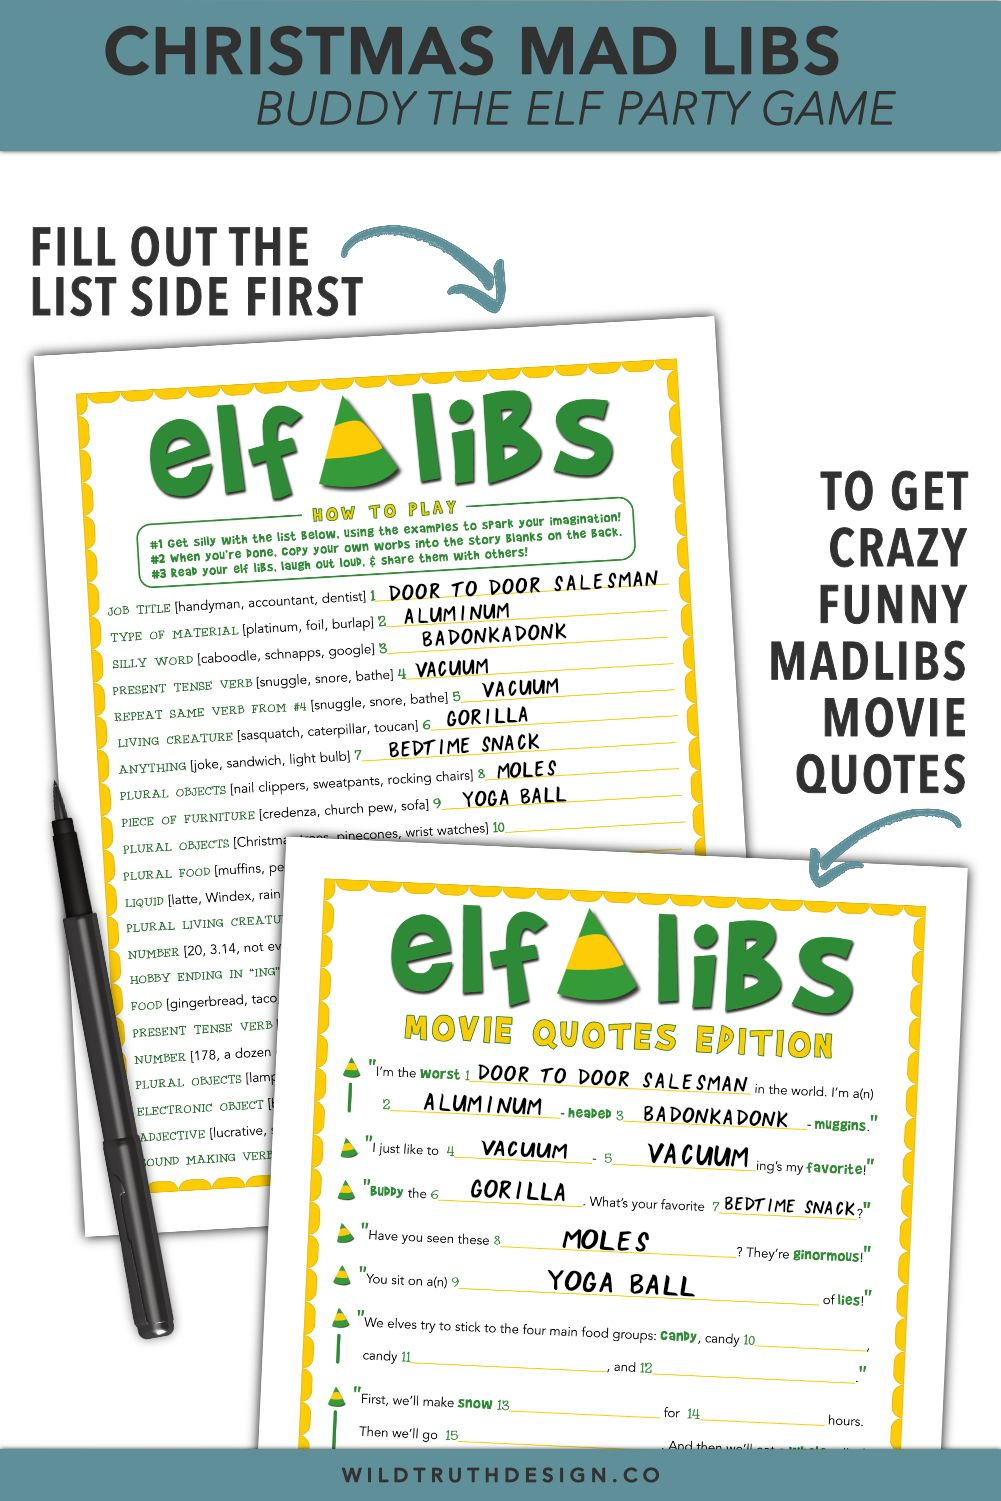 Buddy The Elf Mad Libs - Christmas Movie Party Game